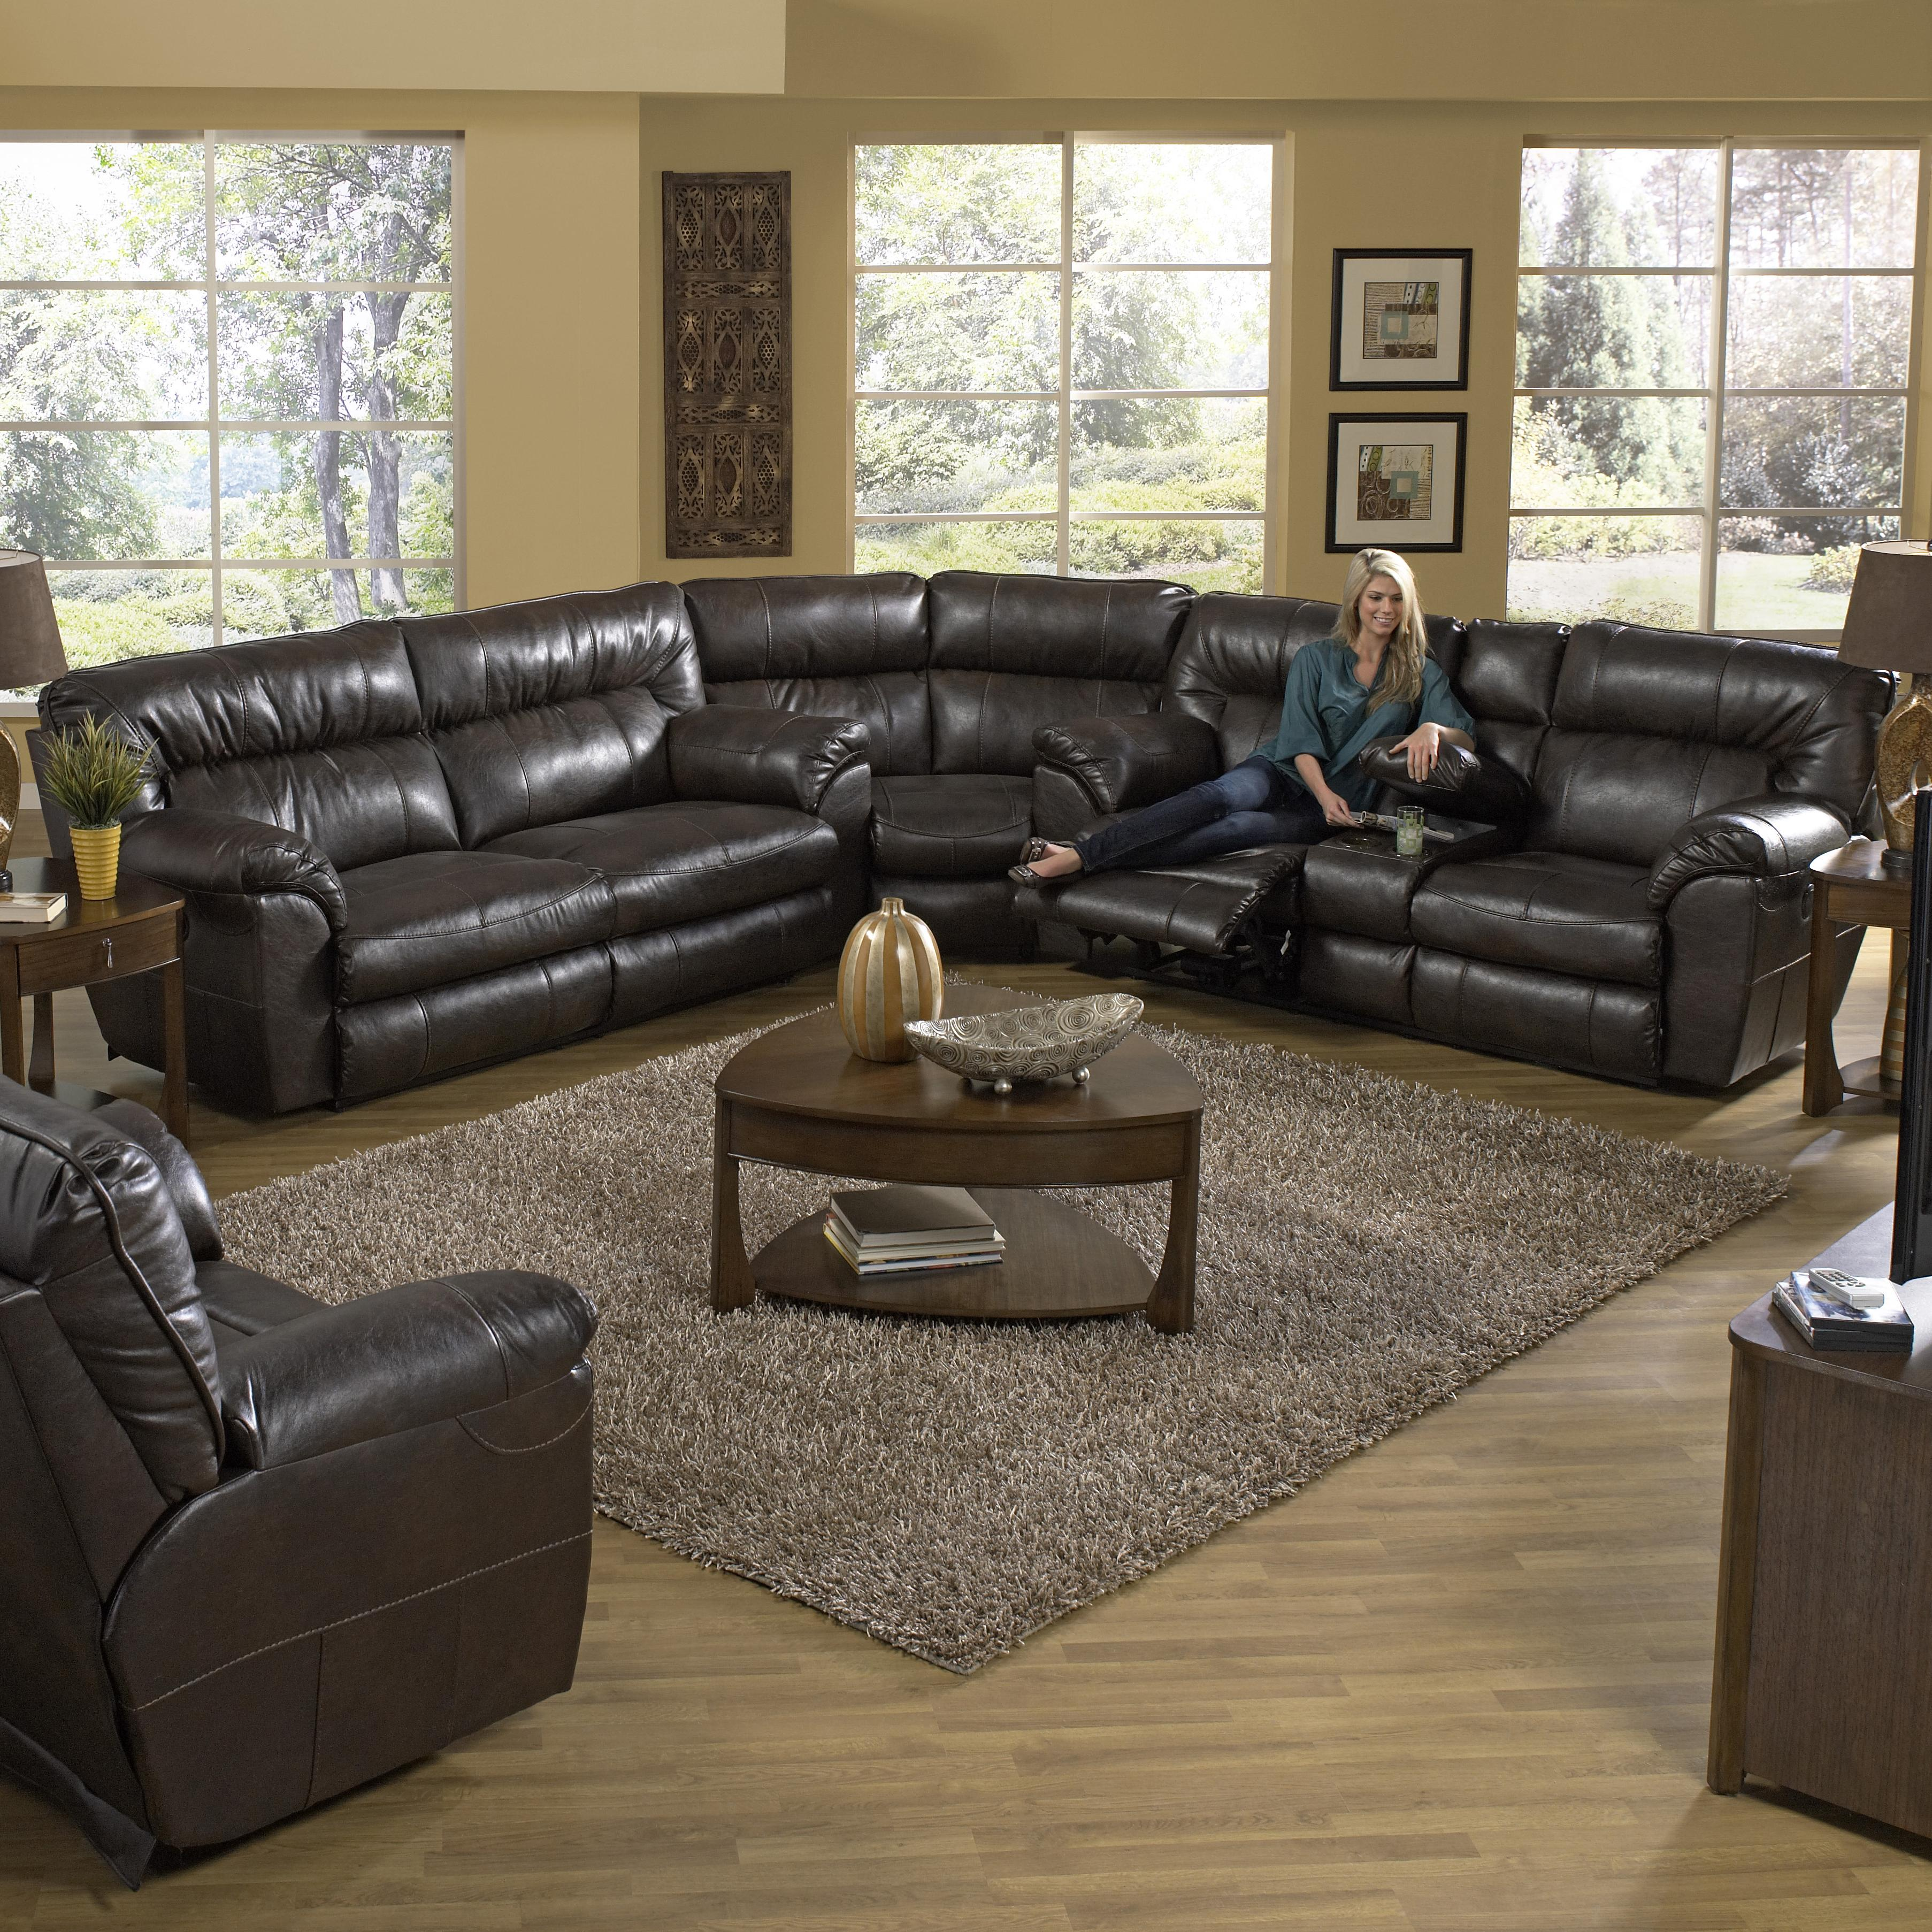 Reclining Sectional Sofa with Right Console : catnapper nolan sectional - Sectionals, Sofas & Couches